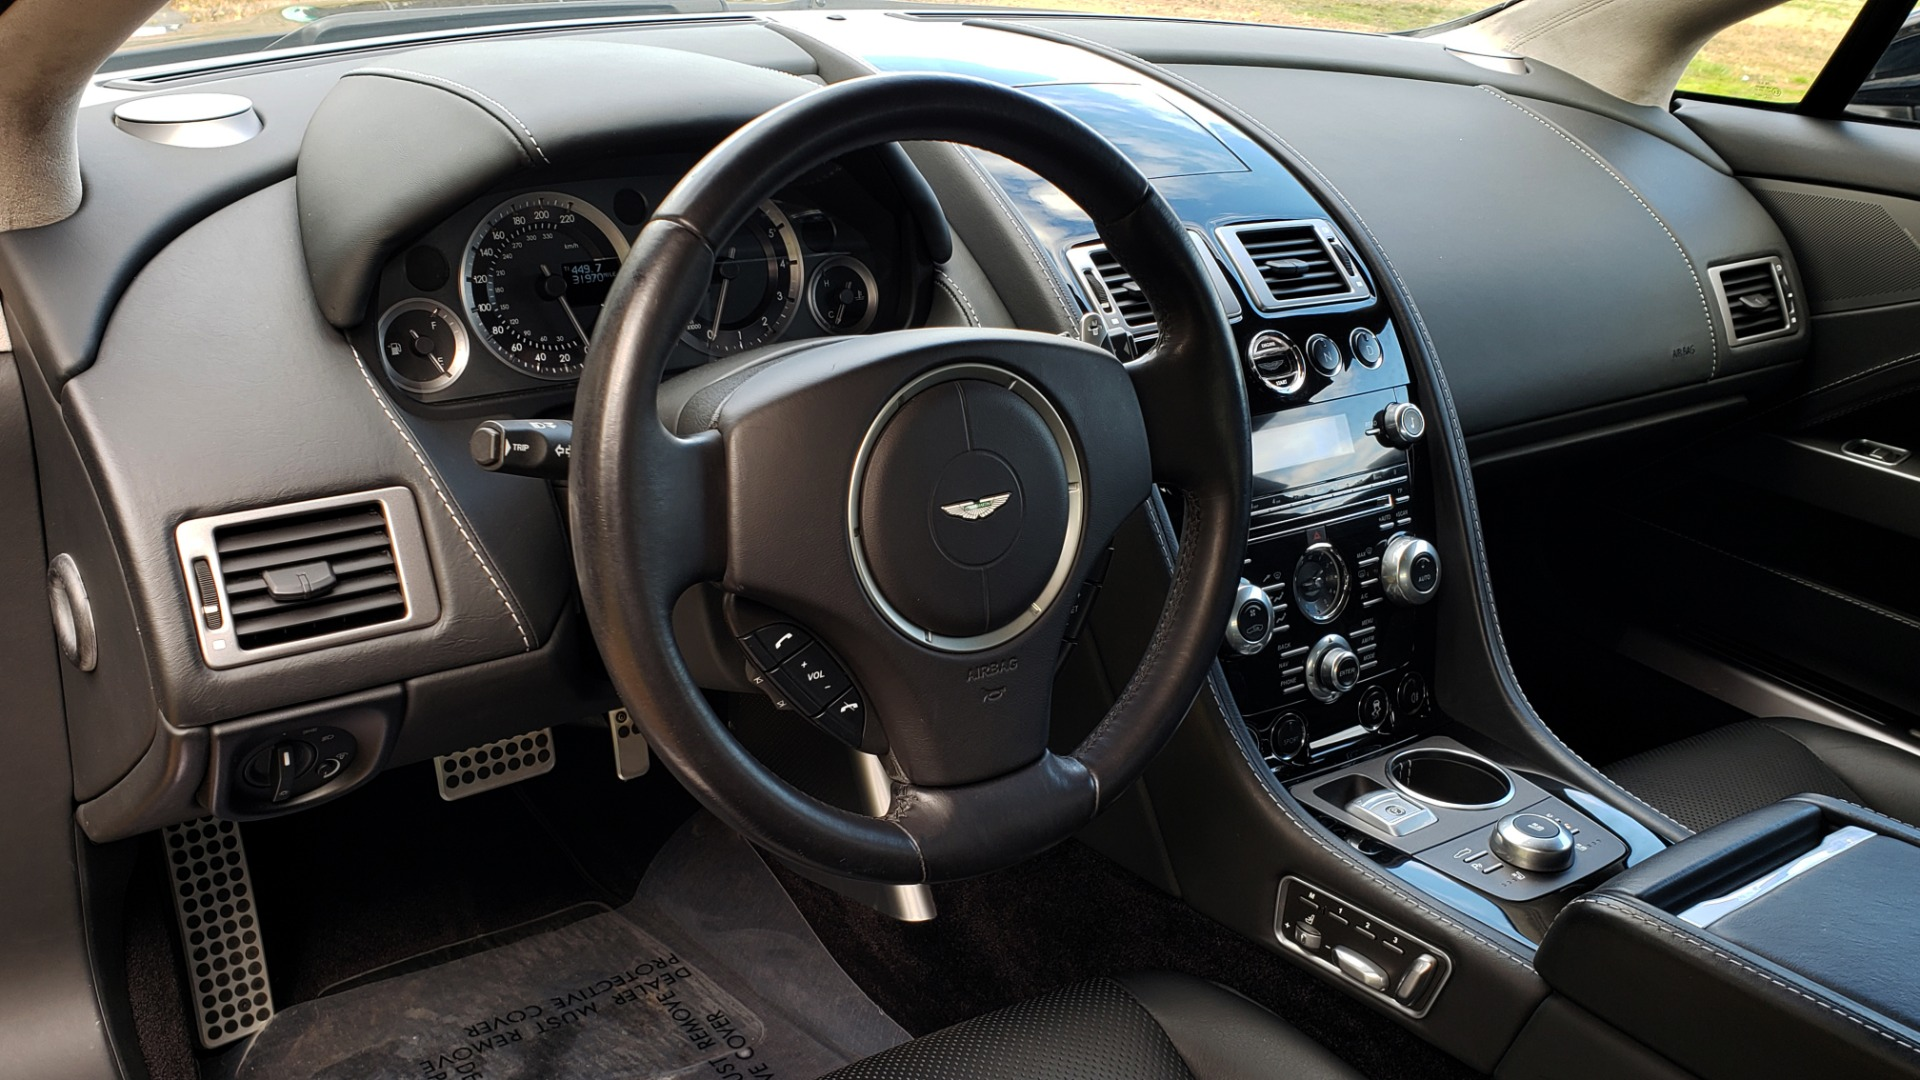 Used 2012 Aston Martin RAPIDE LUXURY 6.0L V12 / NAV / B&O SND / ENTERTAINMENT / REARVIEW for sale Sold at Formula Imports in Charlotte NC 28227 38